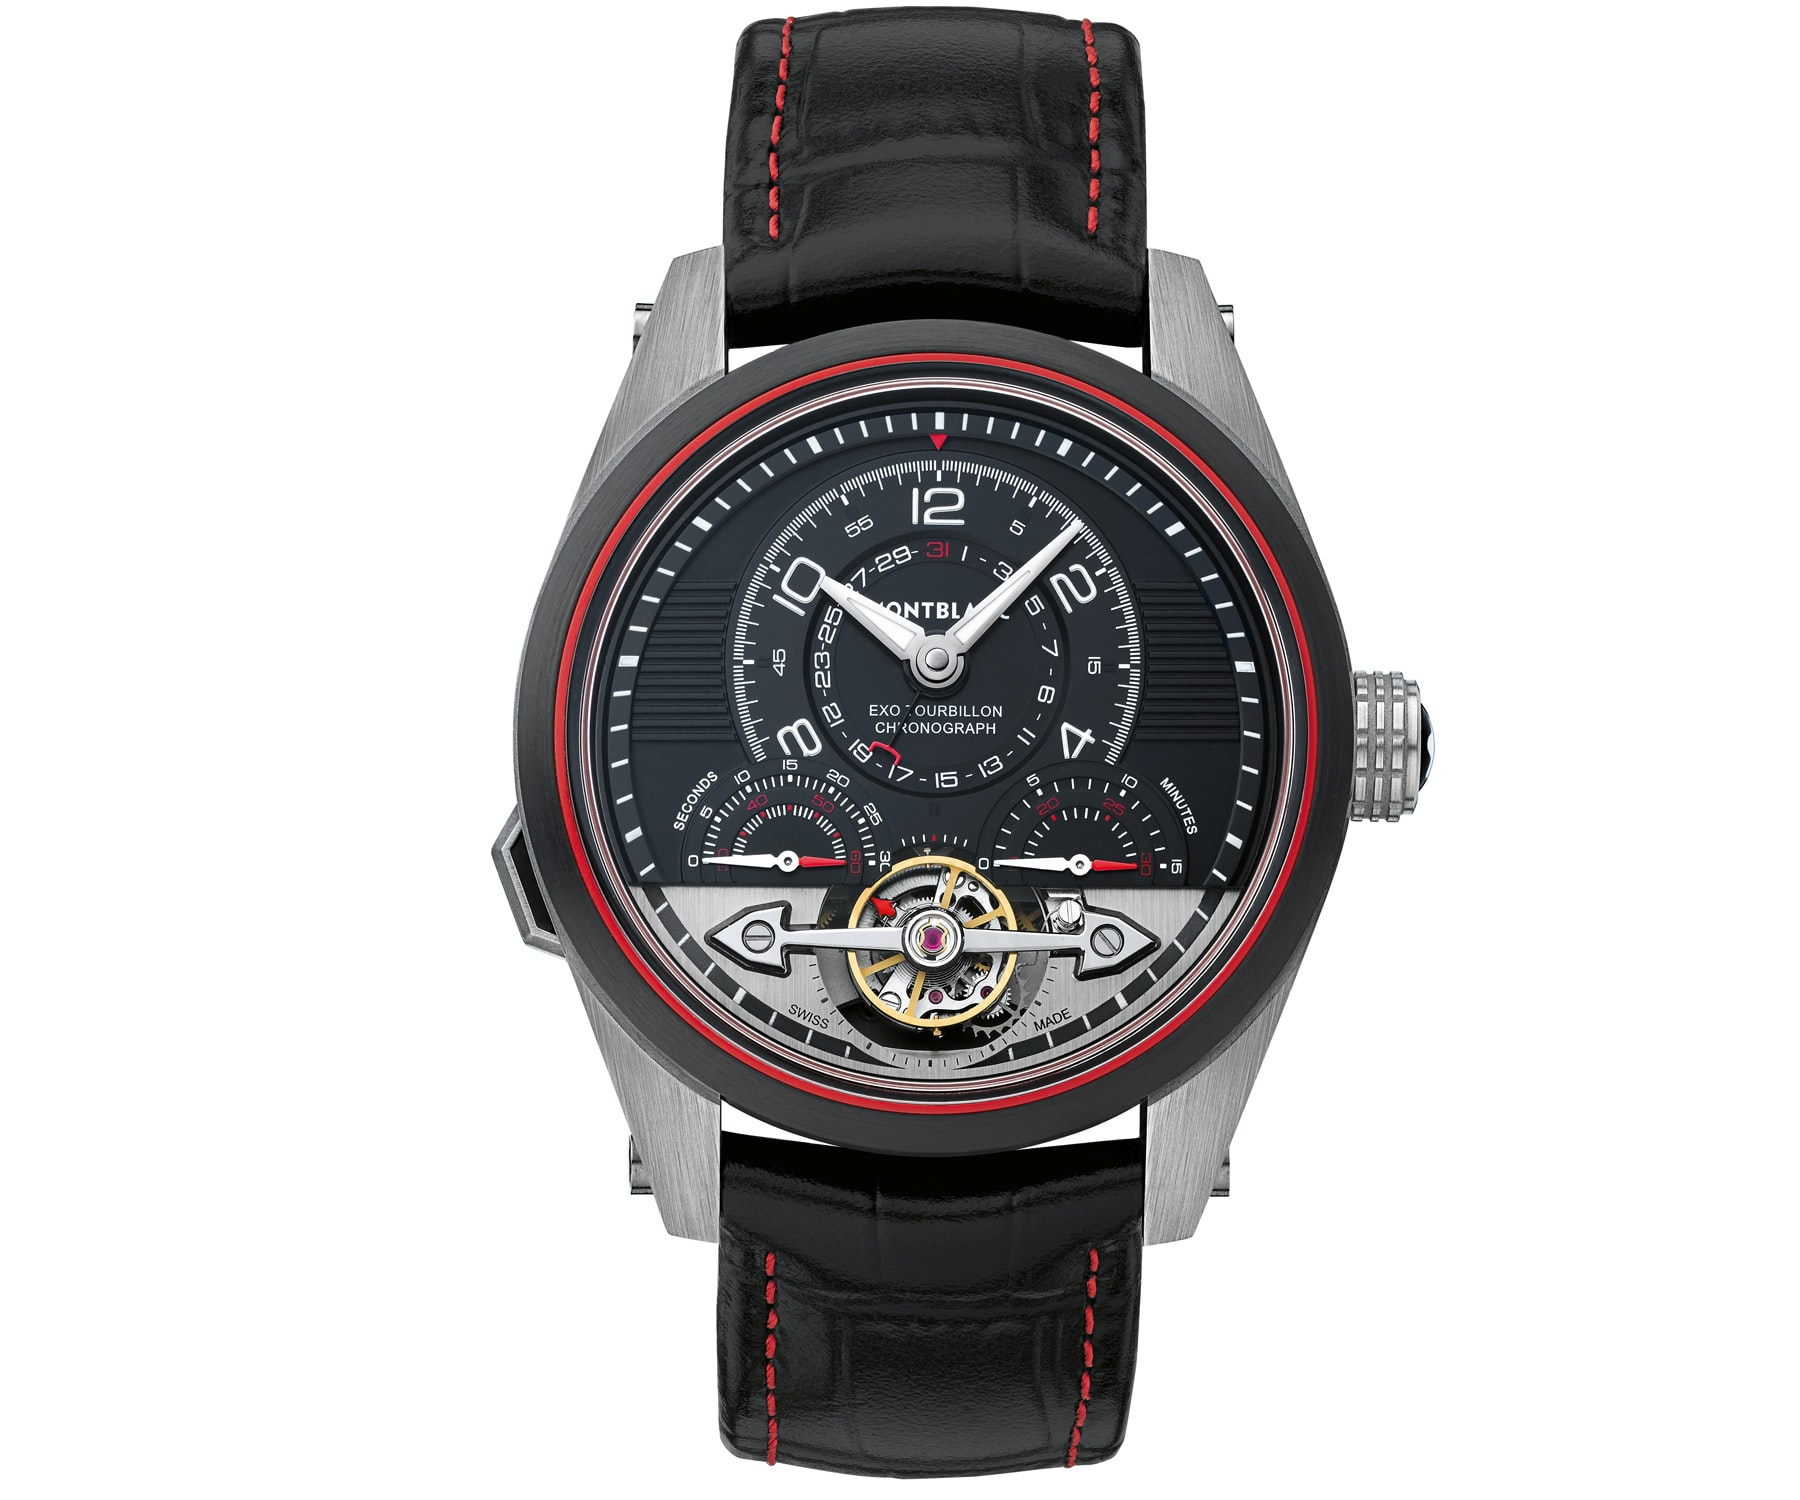 Montblanc TimeWalker ExoTourbillon Minute Chronograph Limited Edition 100